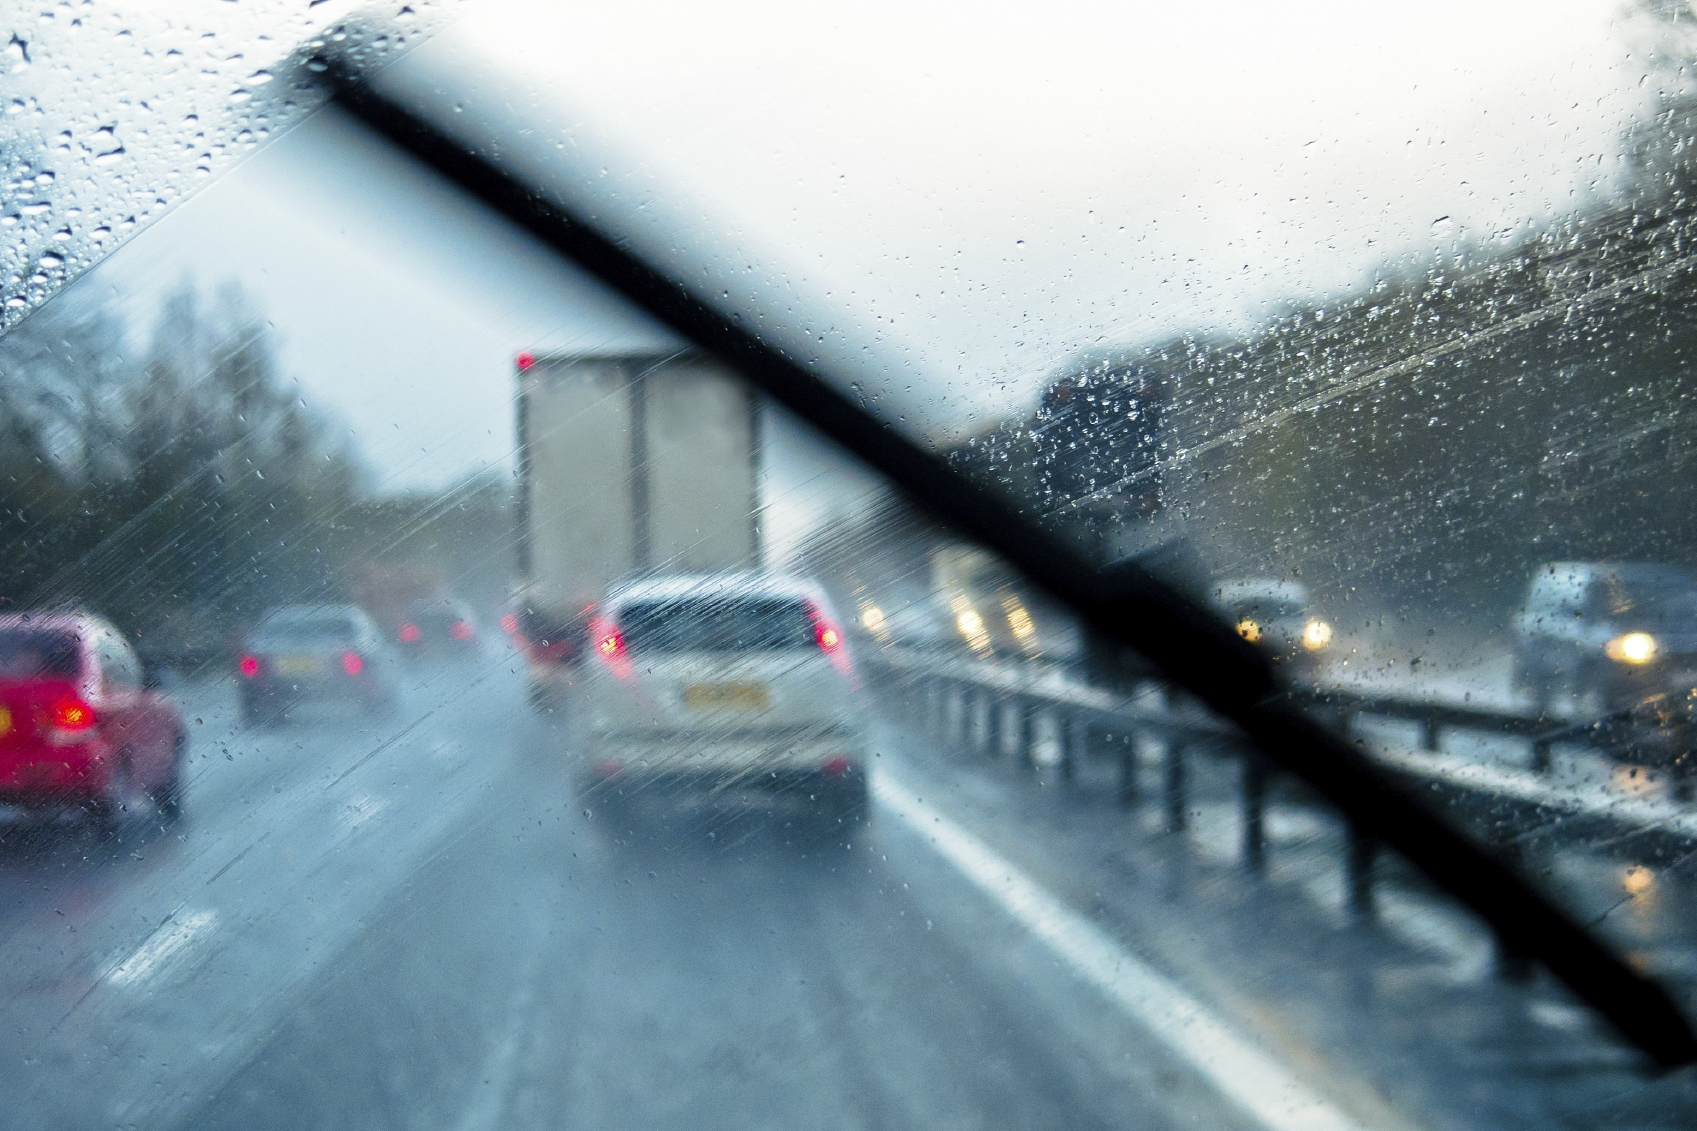 Rain through the window of a car on a motorway